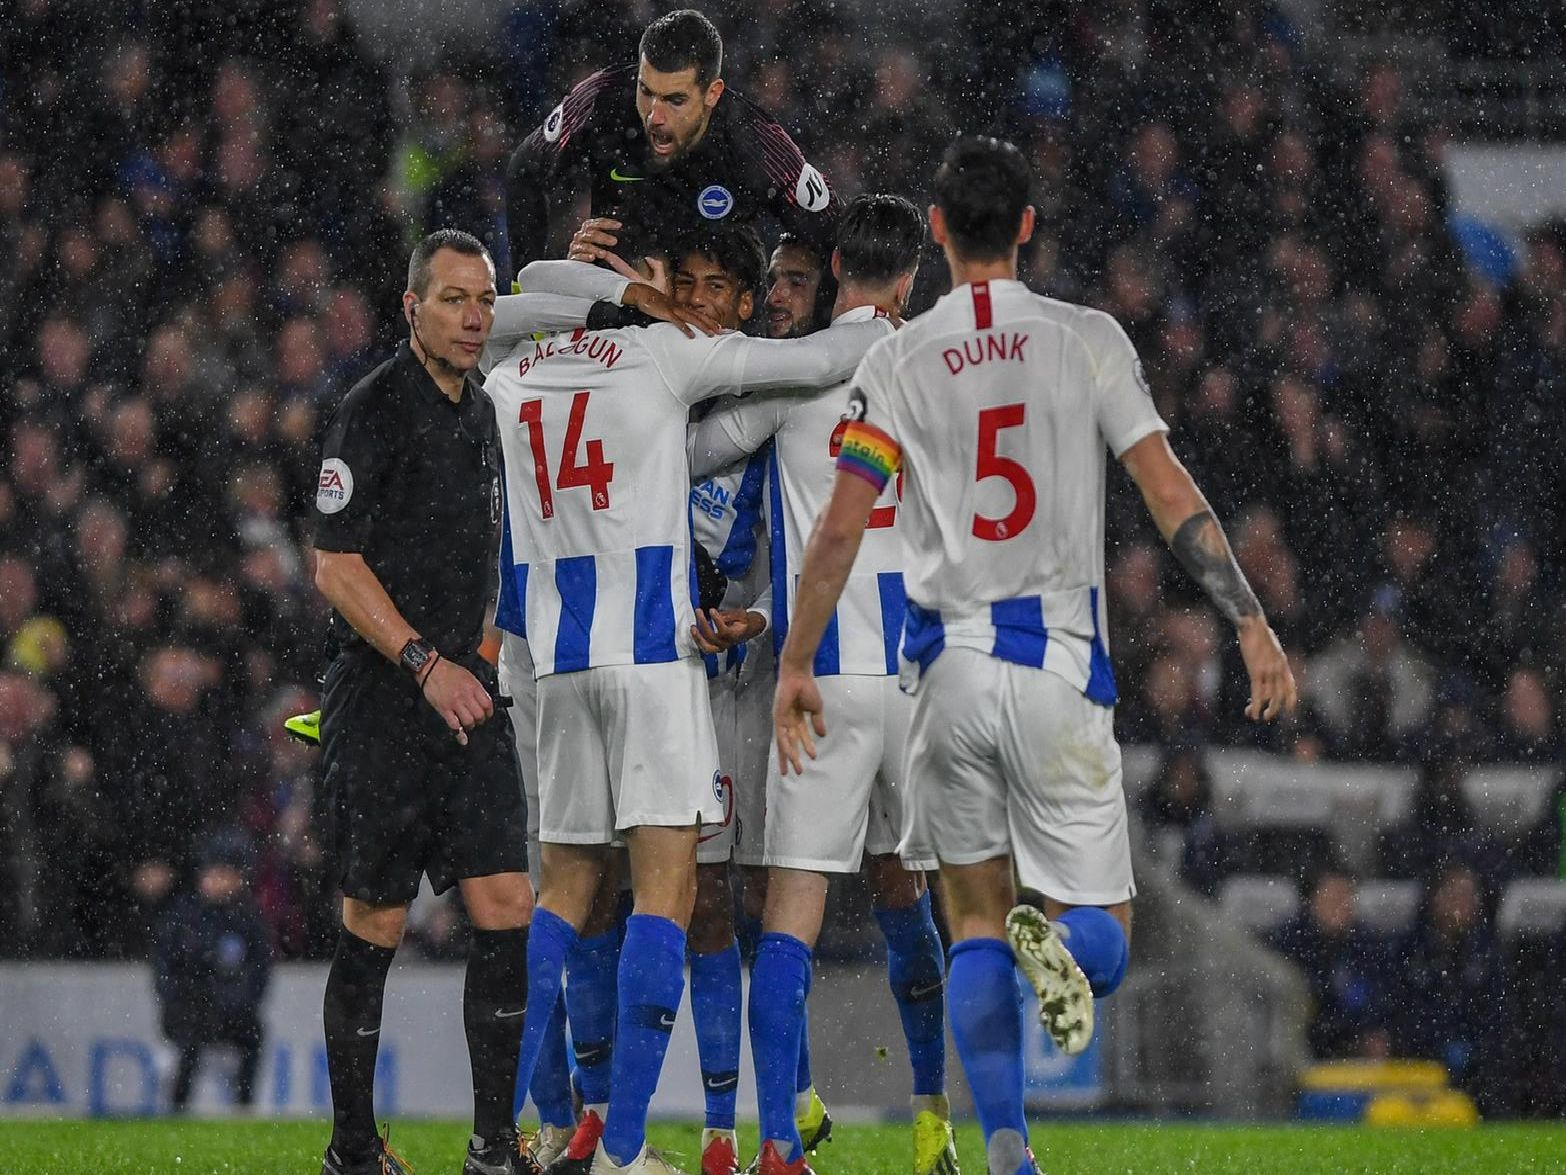 Albion celebrate a goal against Crystal Palace